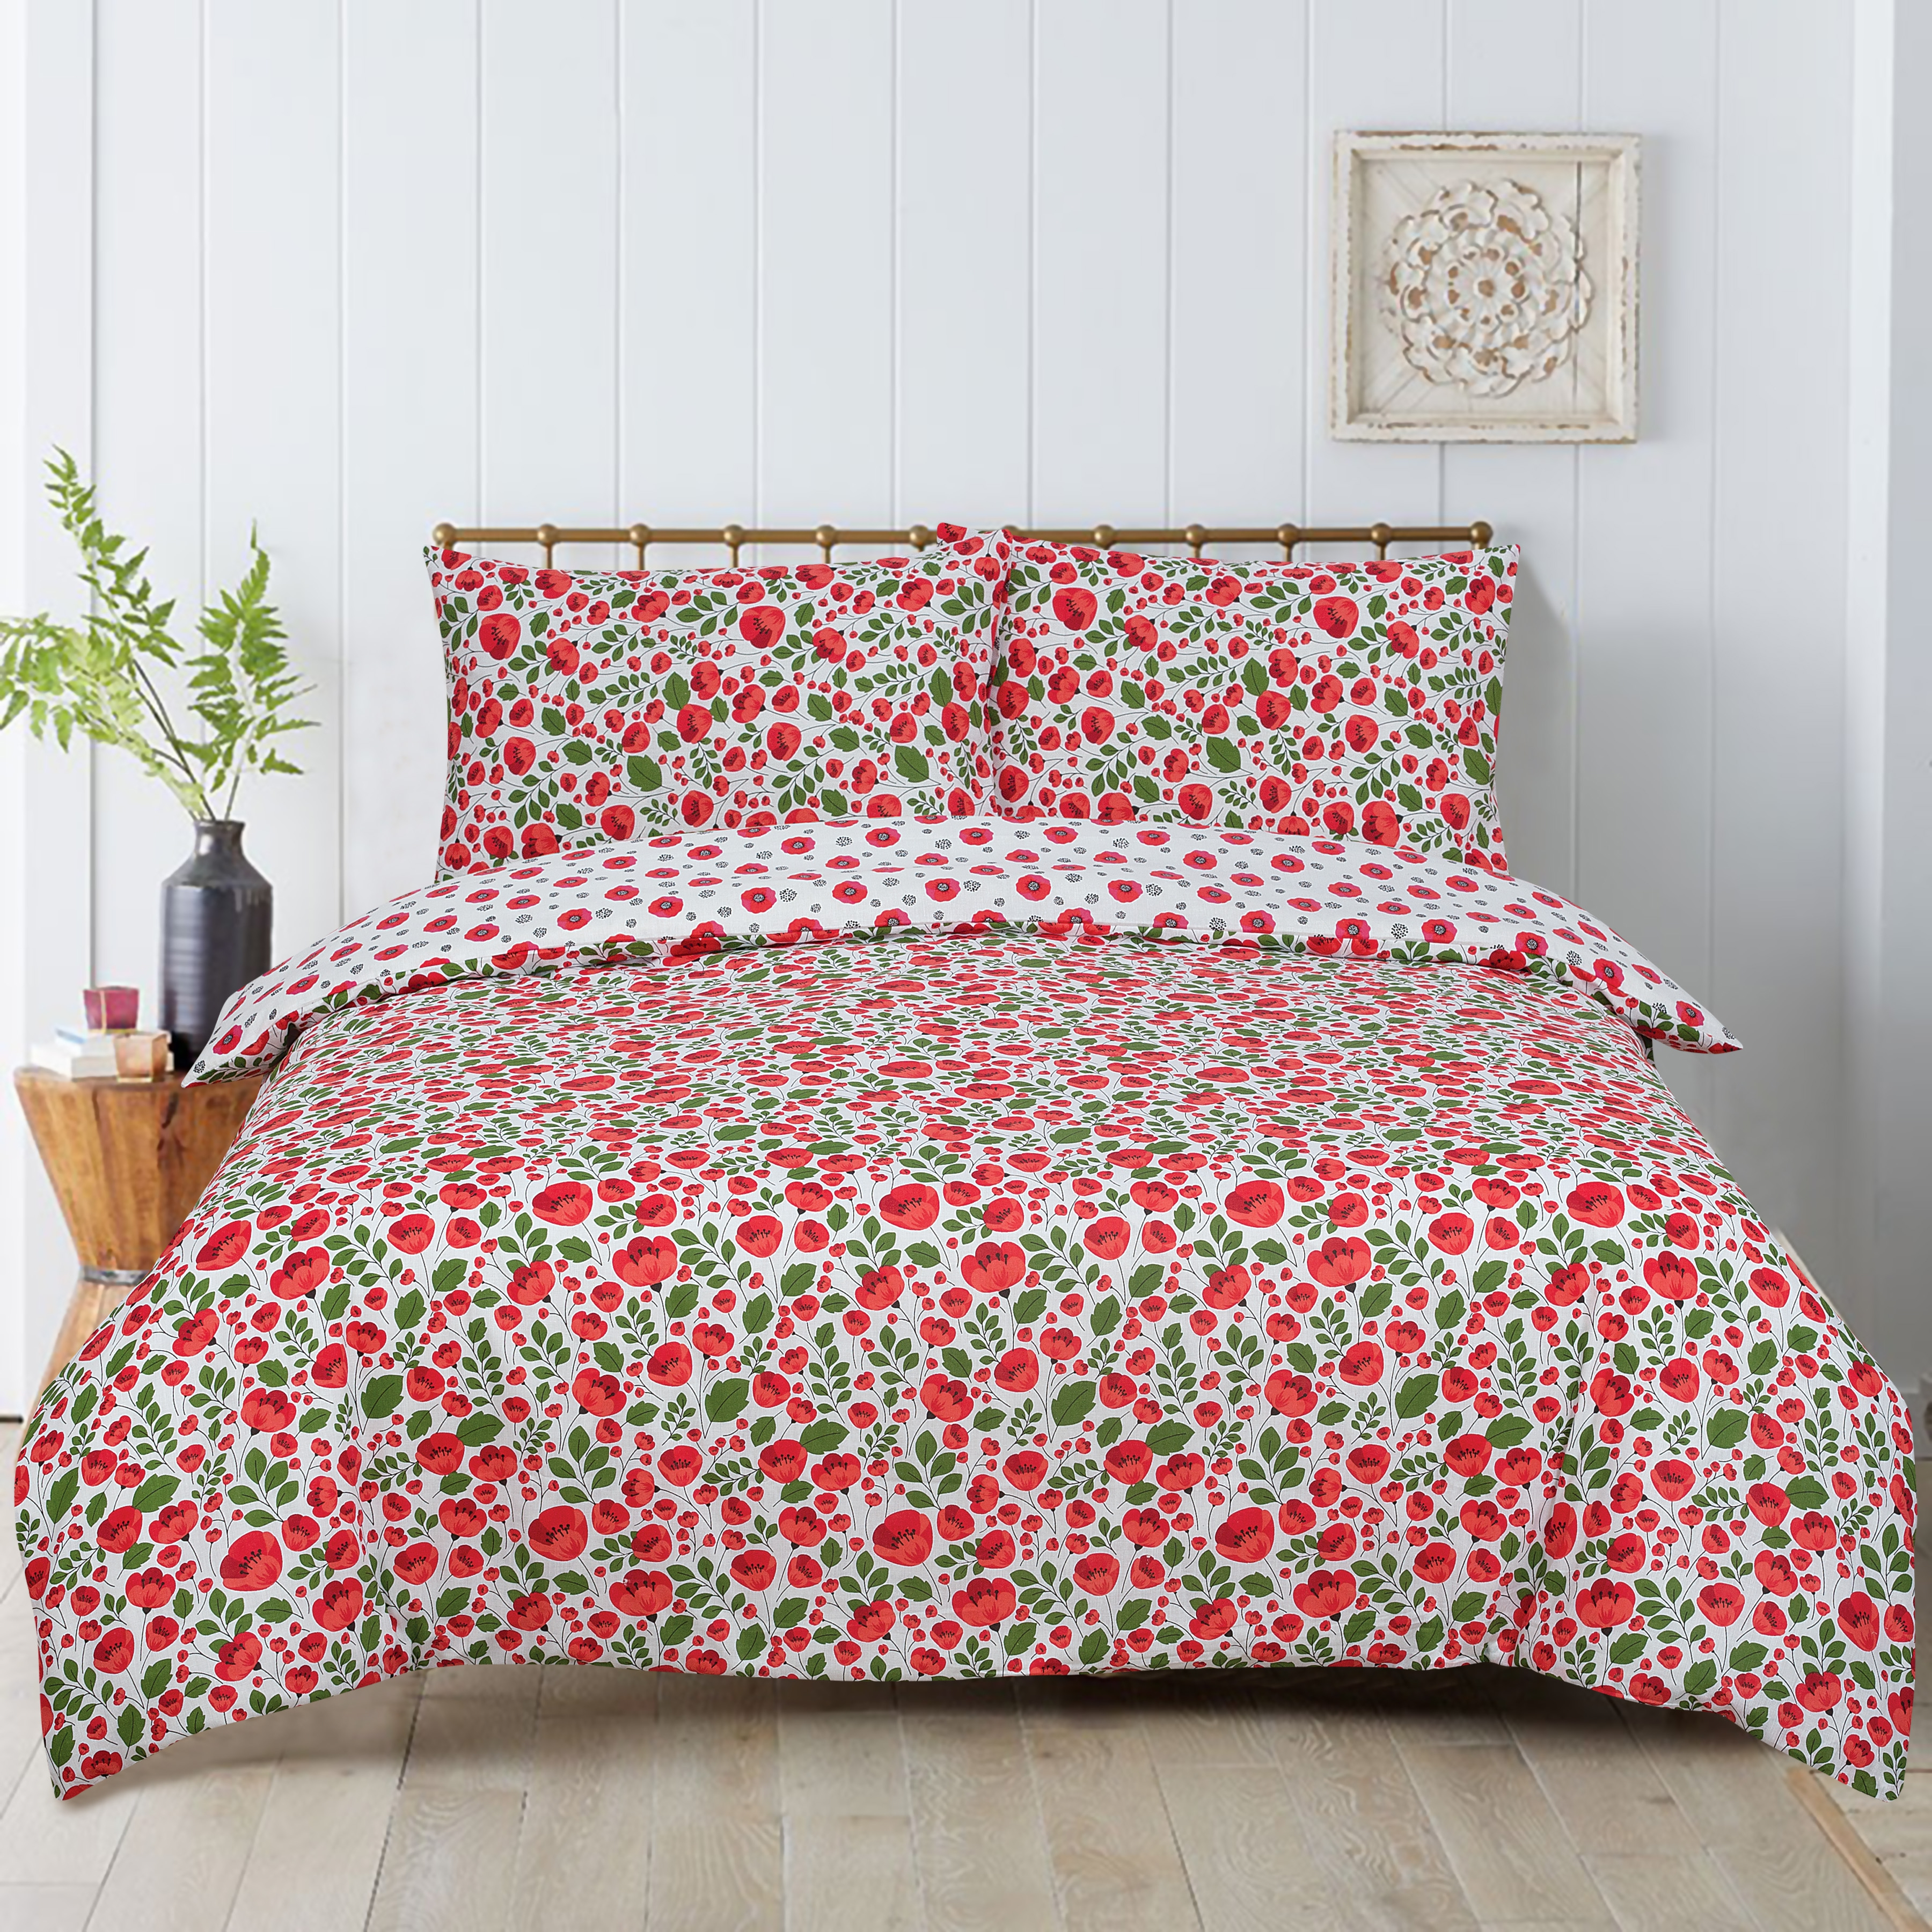 Floral Poppy Reversible Rotary King Bed Duvet Quilt Cover Set